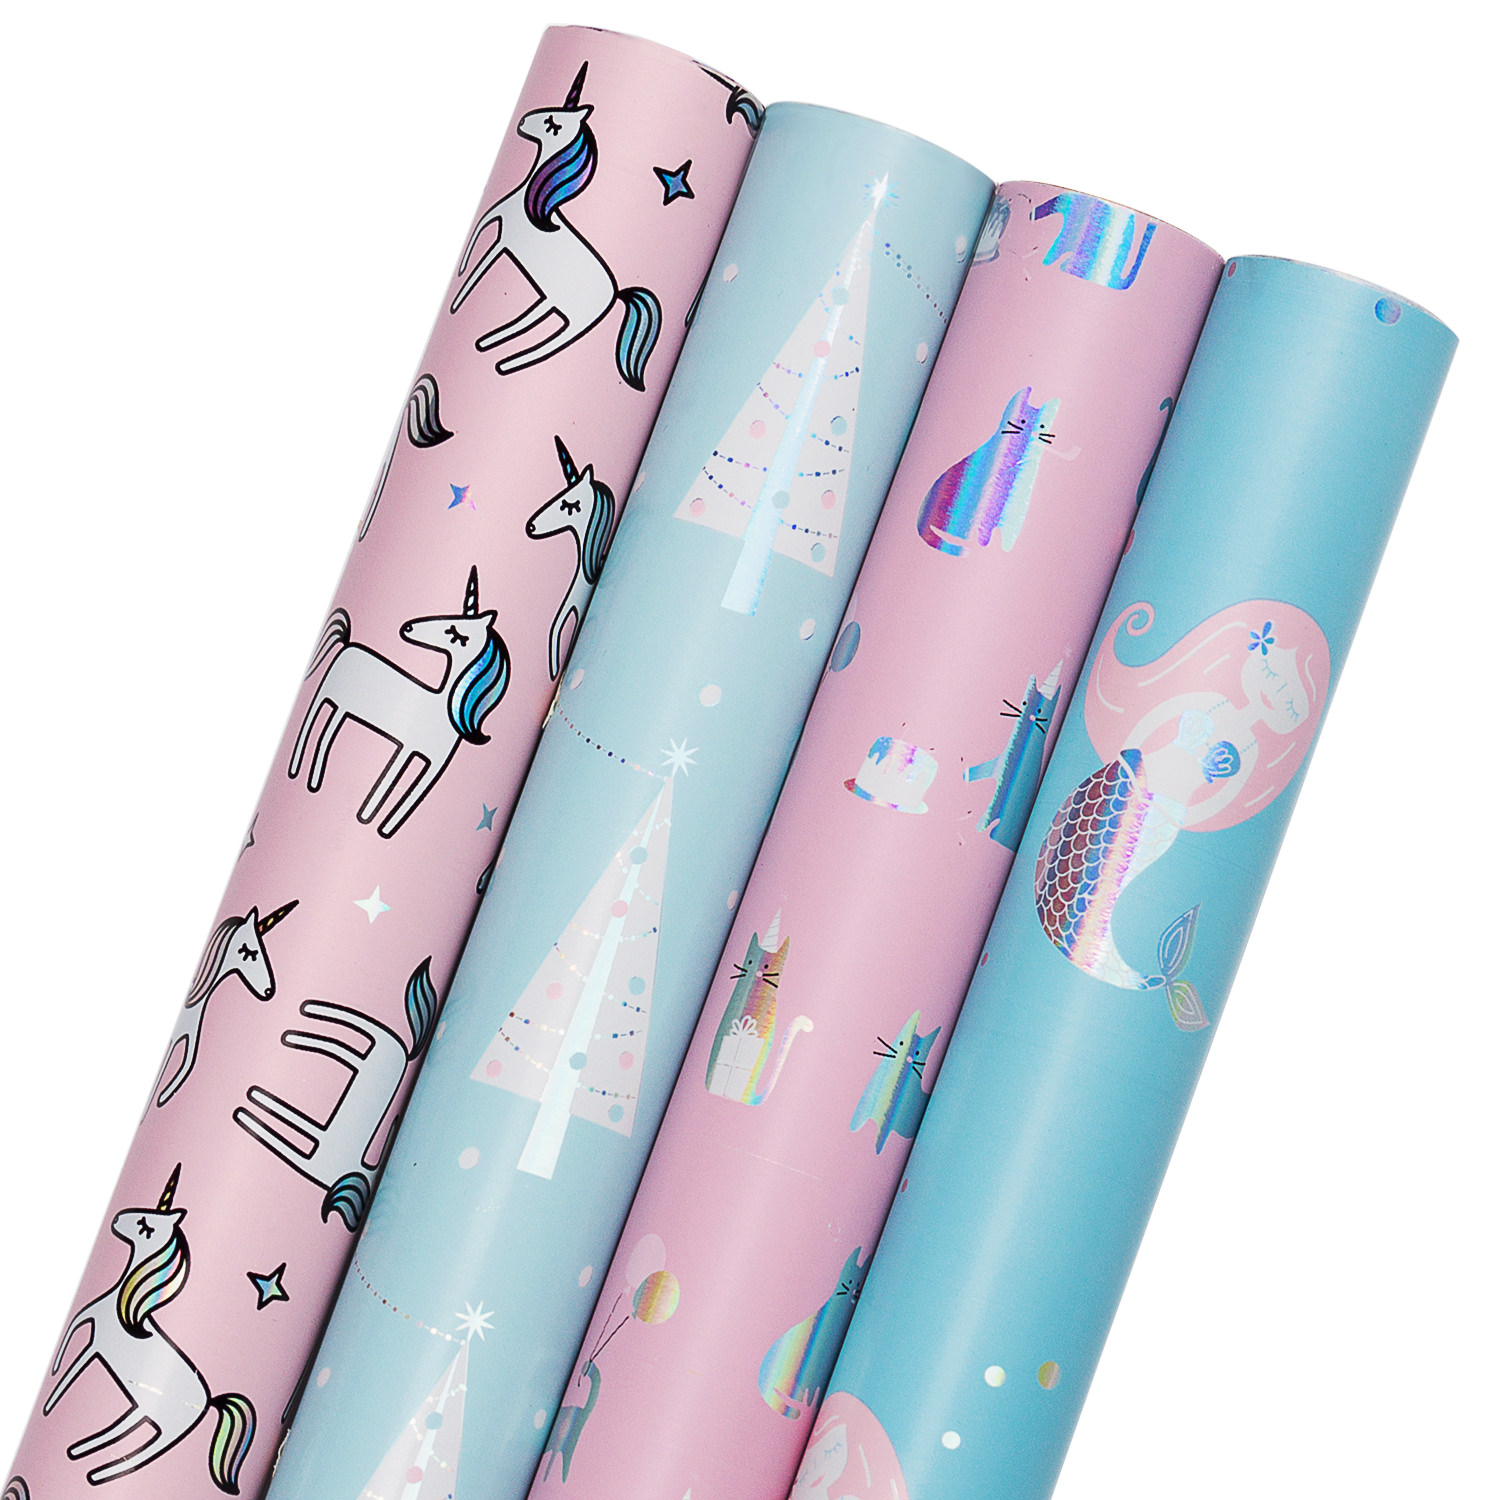 "Wrapaholic Gift Wrapping Paper - Mermaid, Unicorn, Cat & Tree Collection 4 Rolls - 30"" x 120""/Roll"